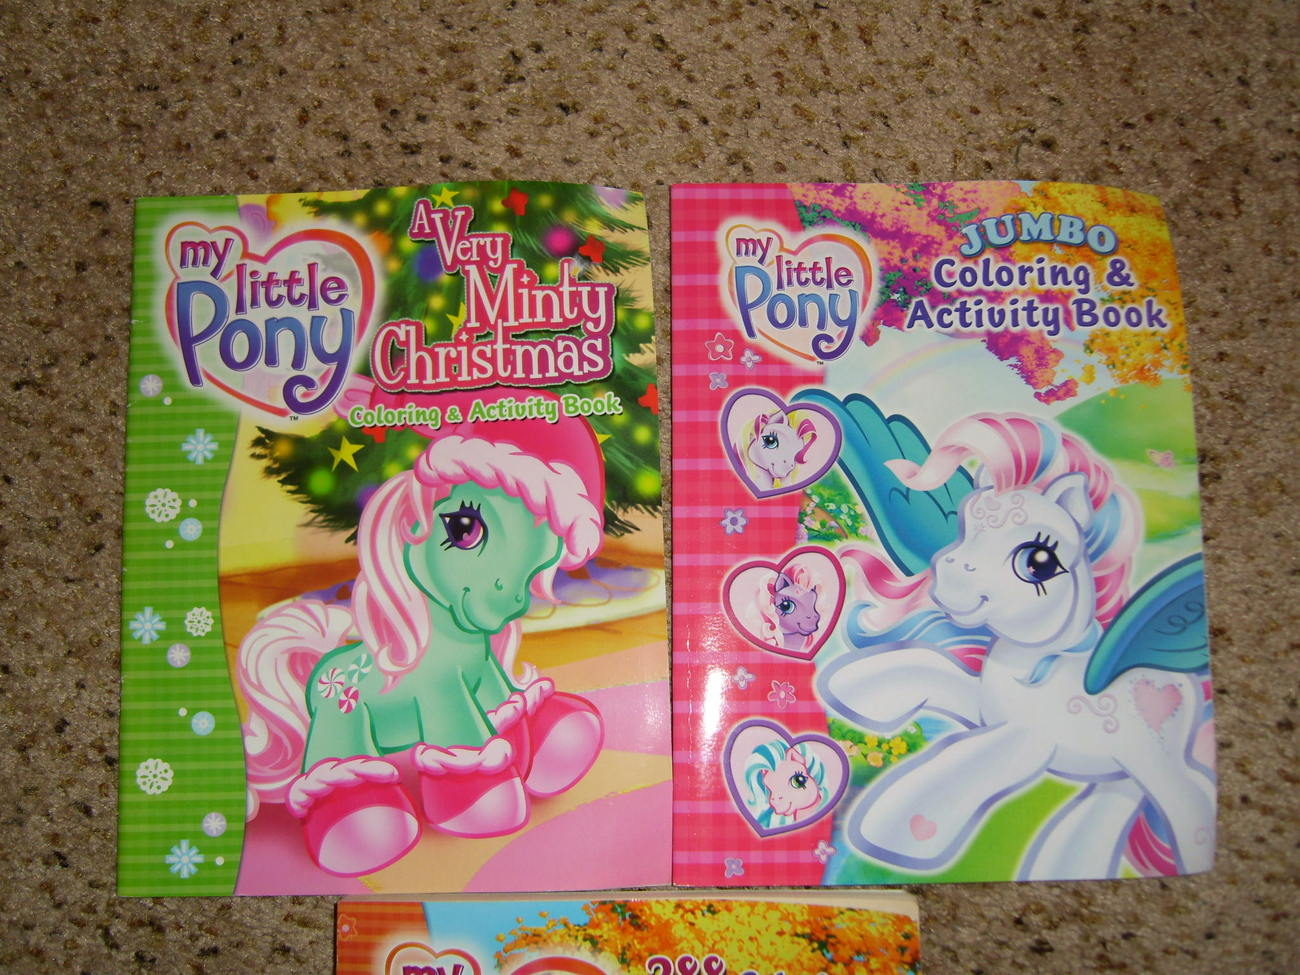 My Little Pony G3 coloring and activity book and 50 similar items